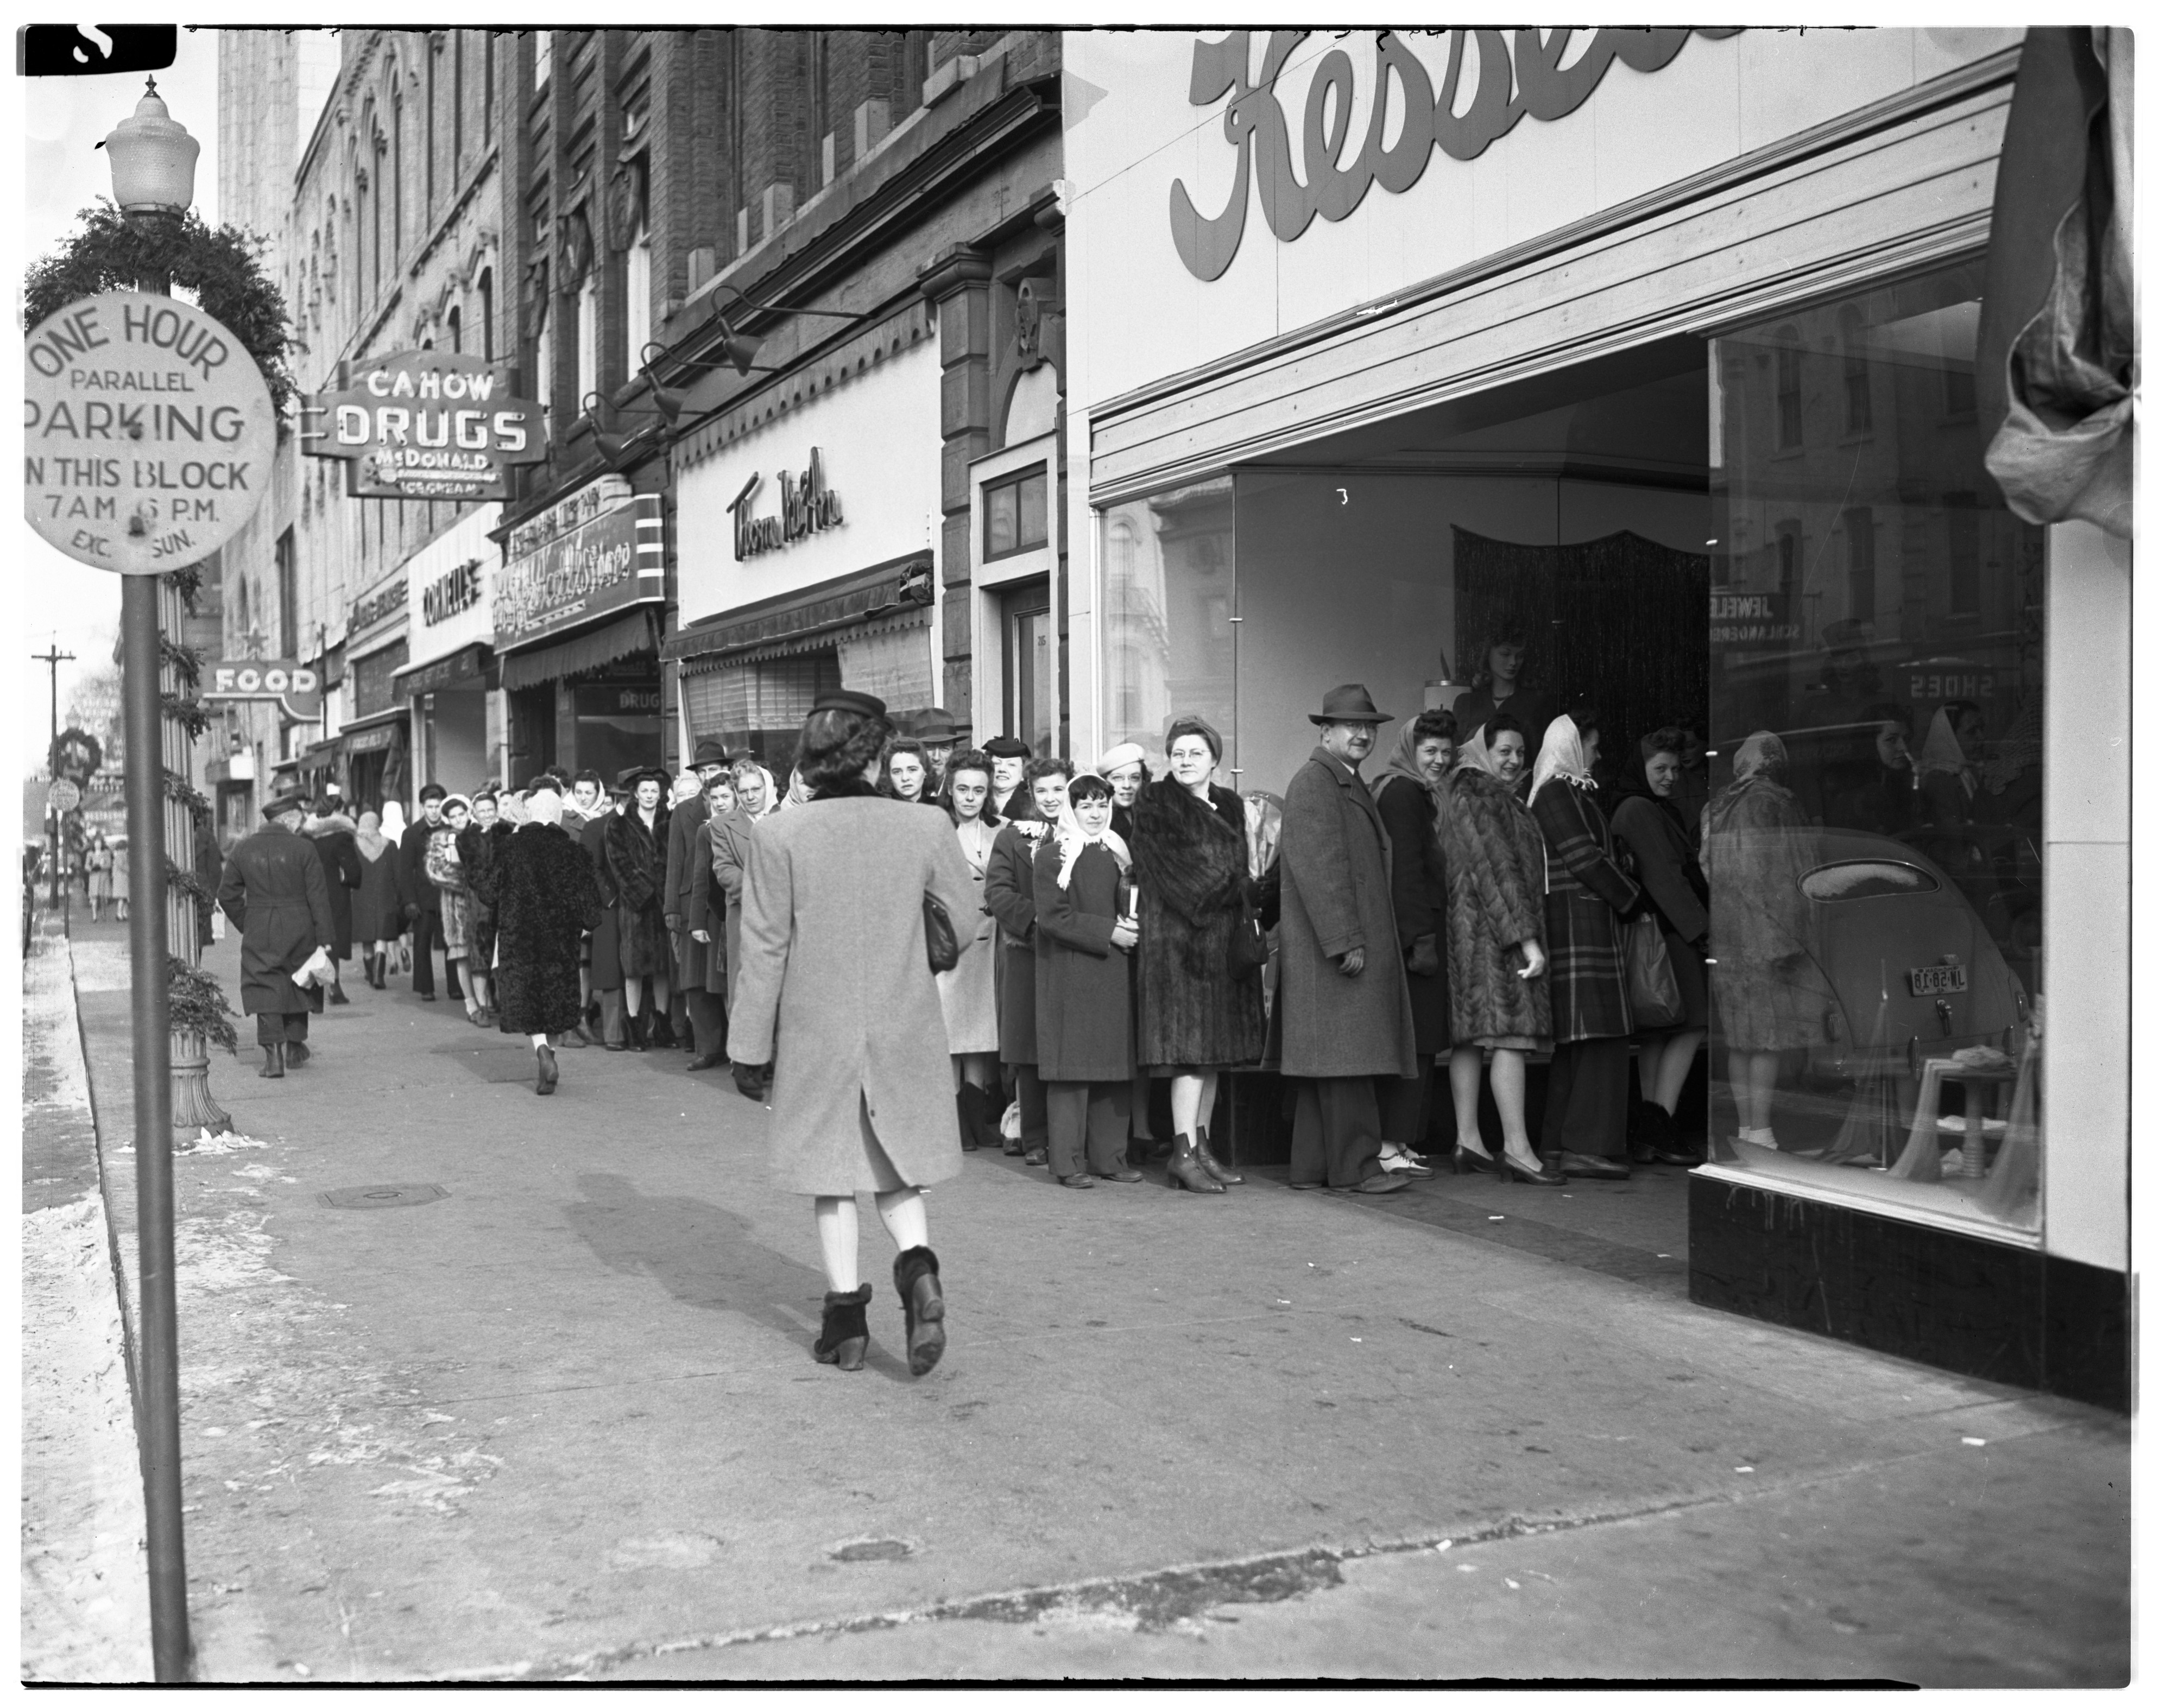 Lining Up To Buy Nylons, December 1945 image